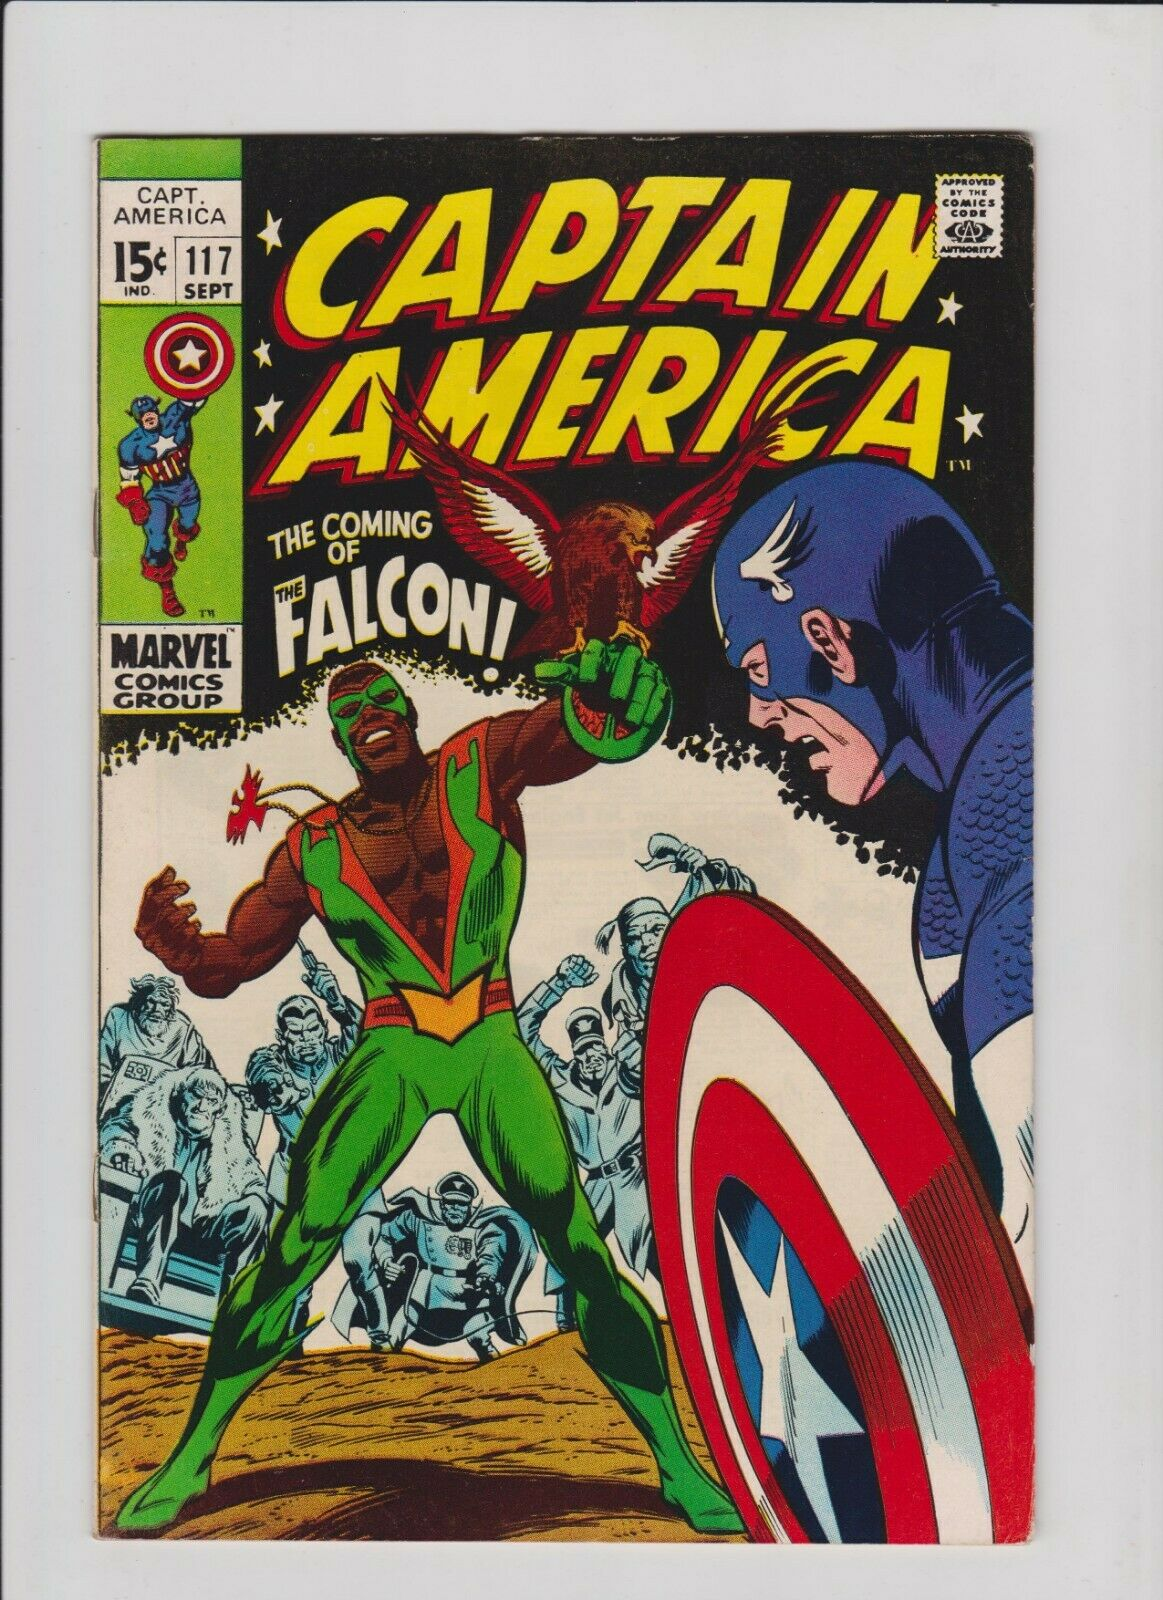 Marvel Comics Captain America #117 & 118, 1st & 2nd App. of Falcon